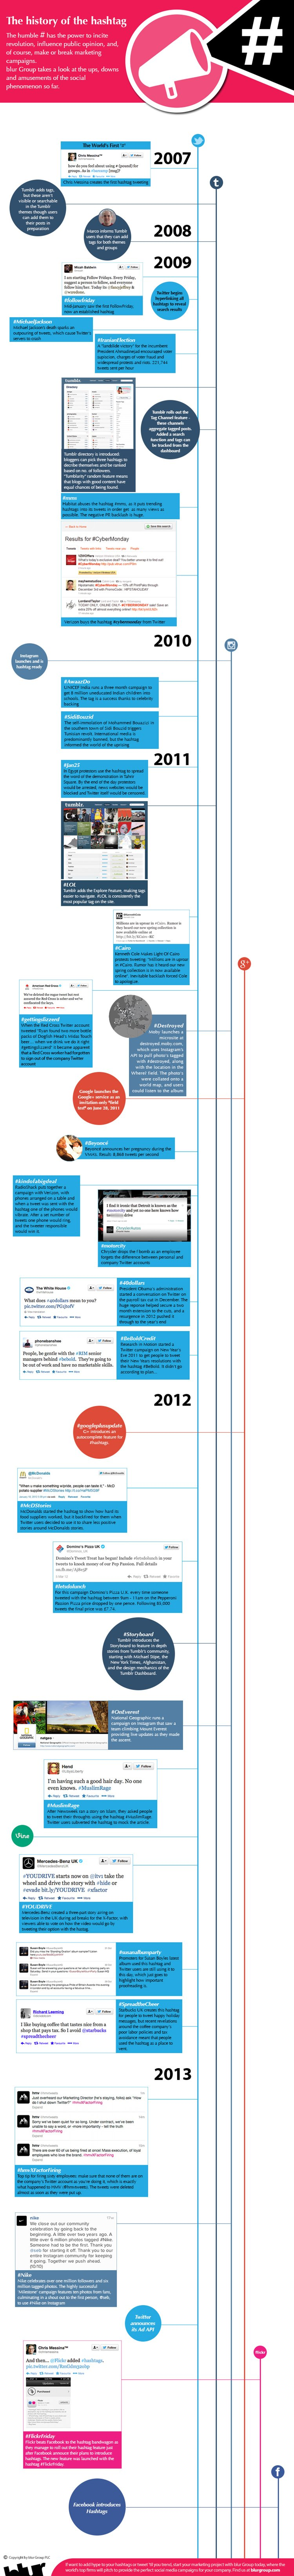 history-of-the-hasthtag-infographic